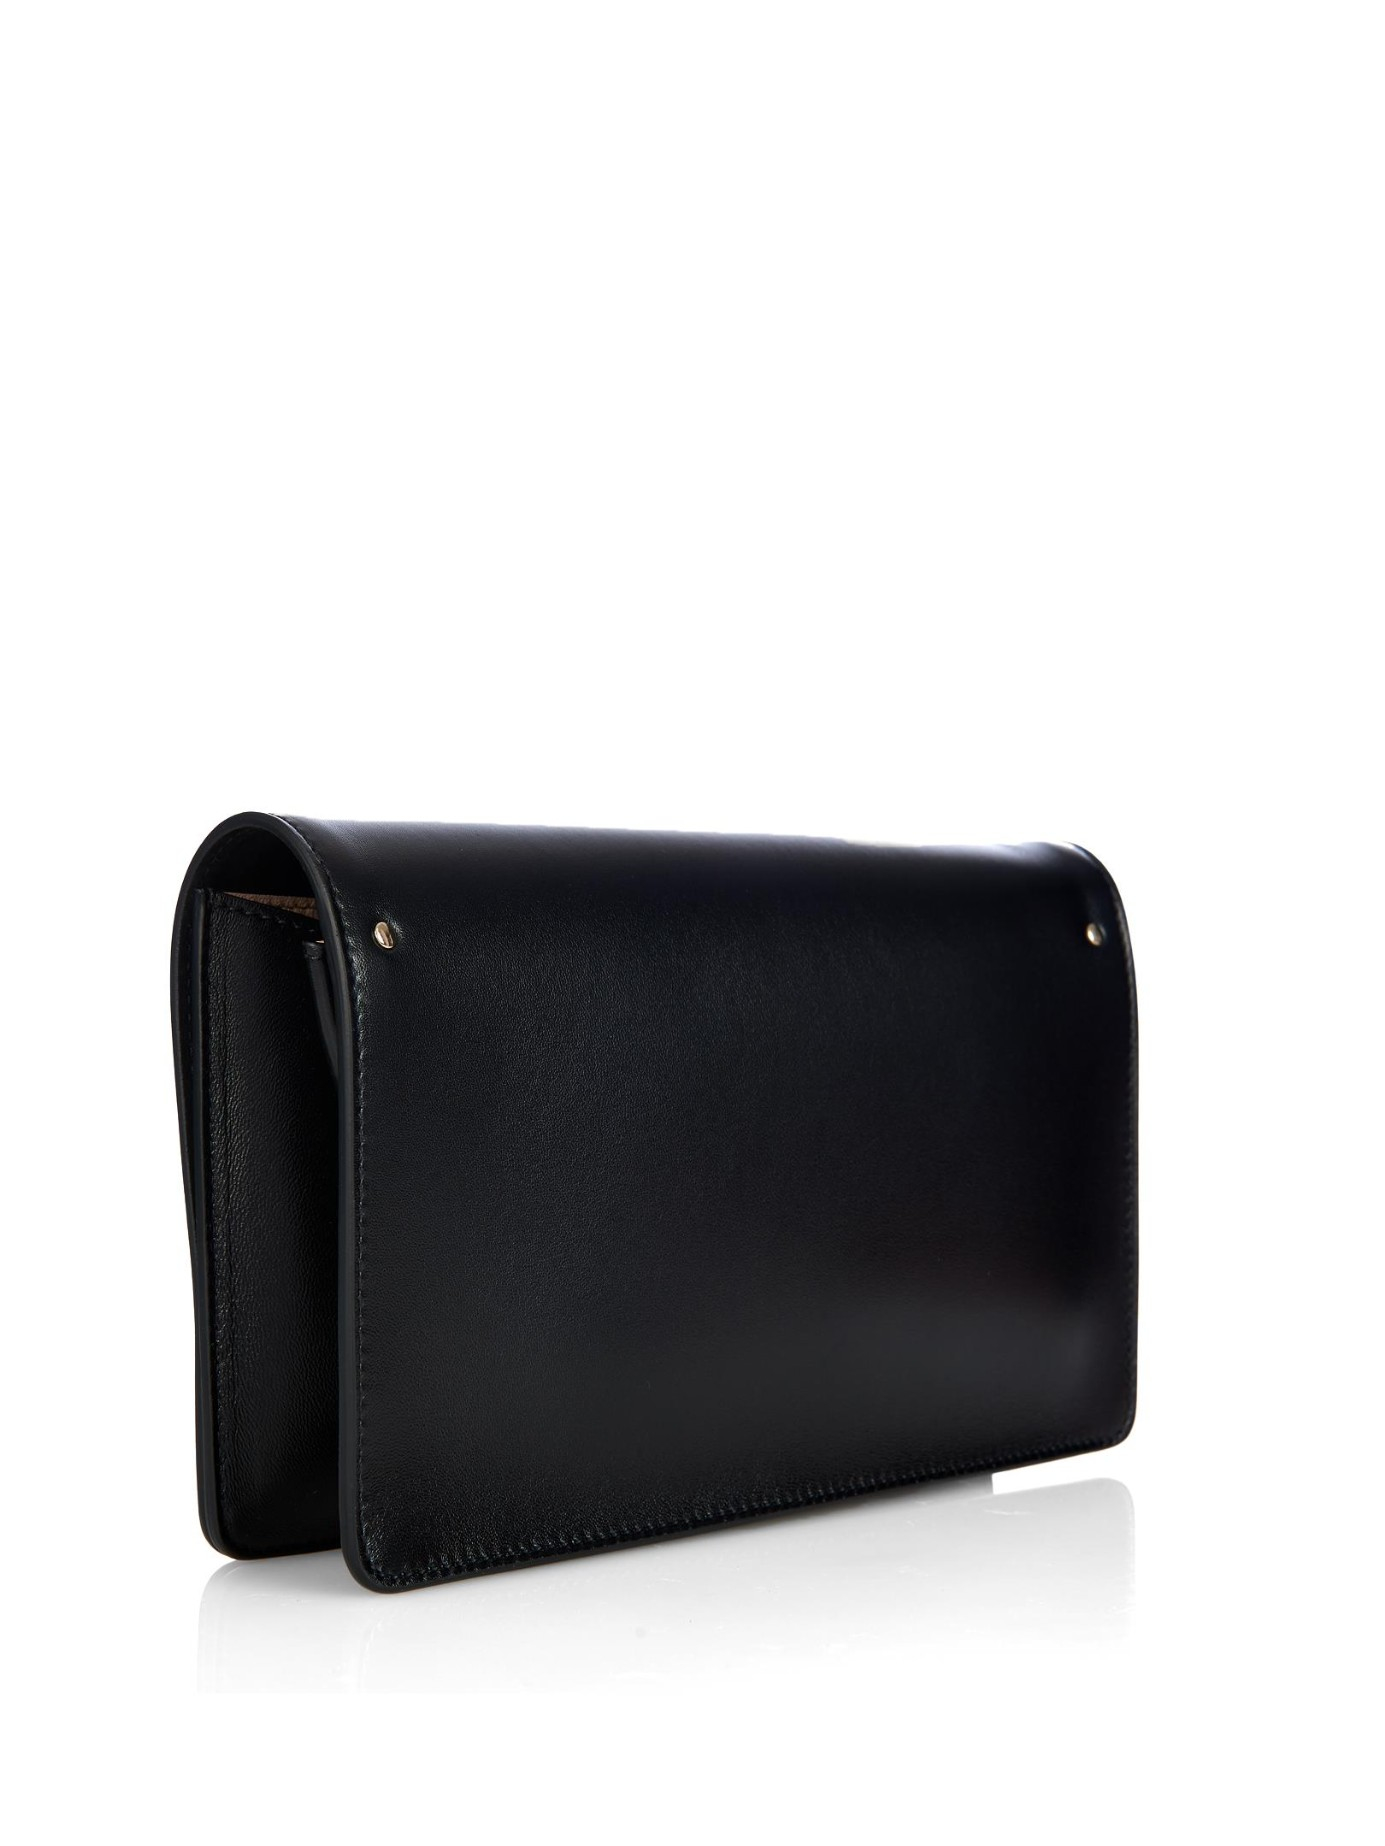 Chlo�� Gabrielle Leather And Suede Clutch in Black | Lyst